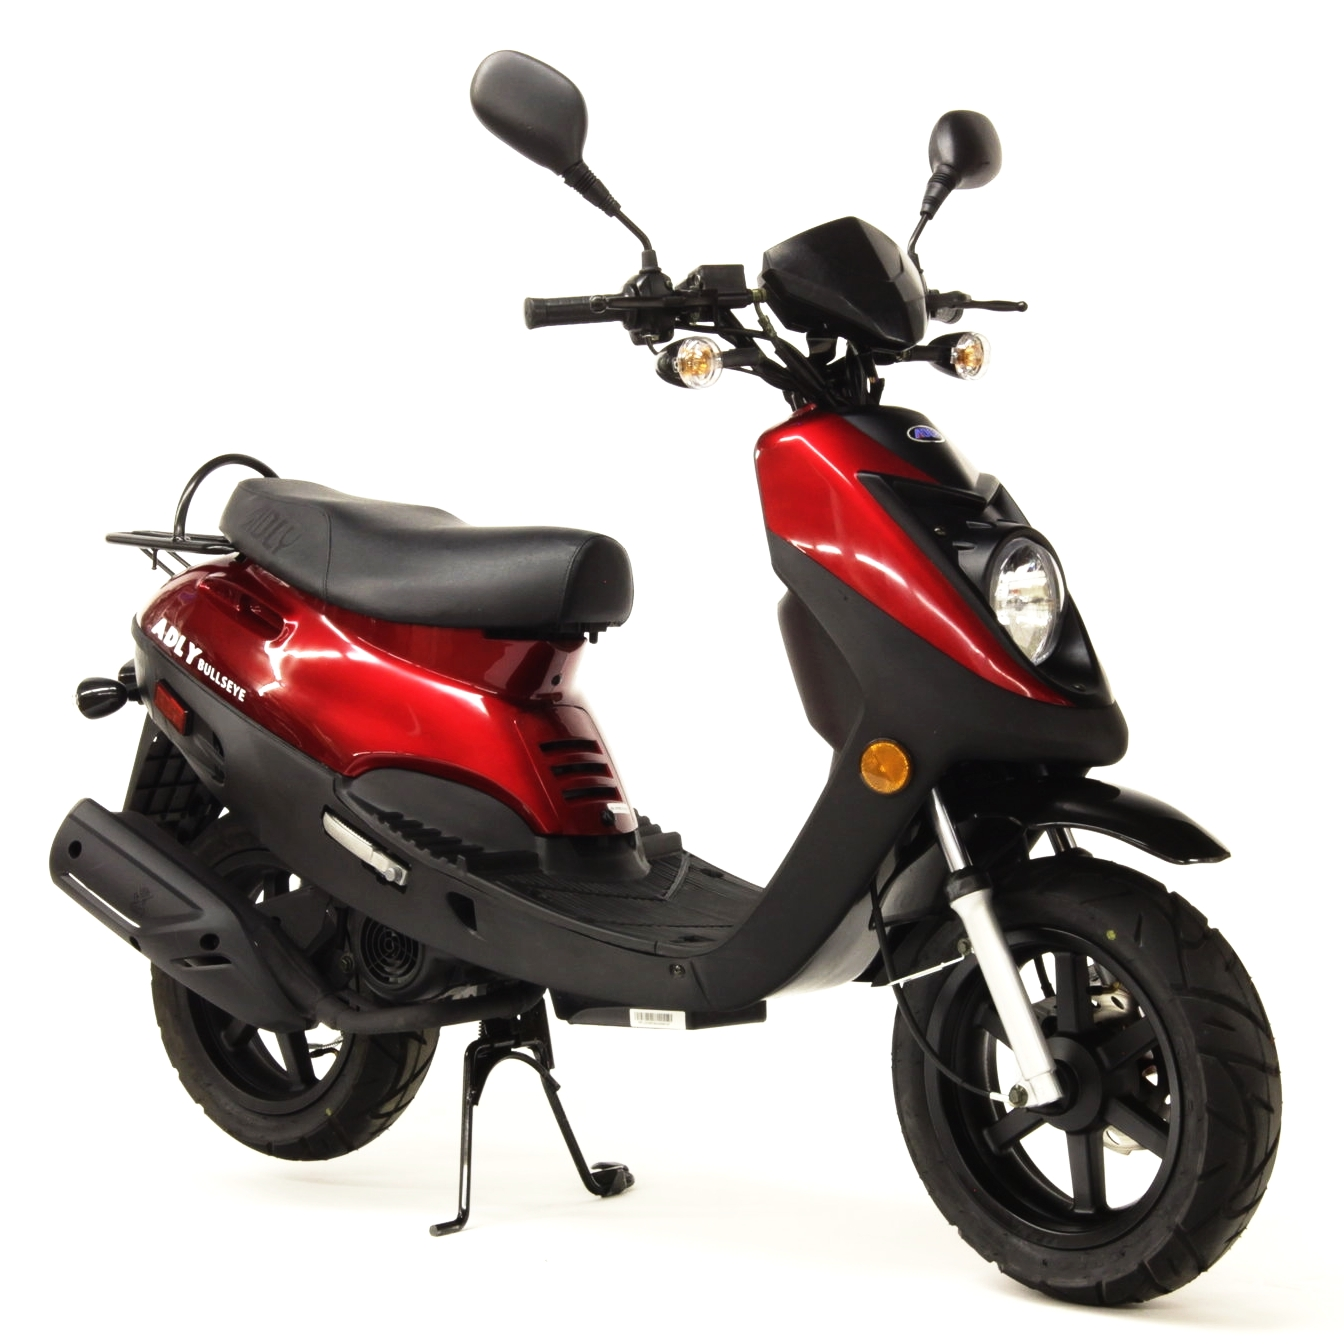 Bikes in Stock — Second Stroke Mopeds